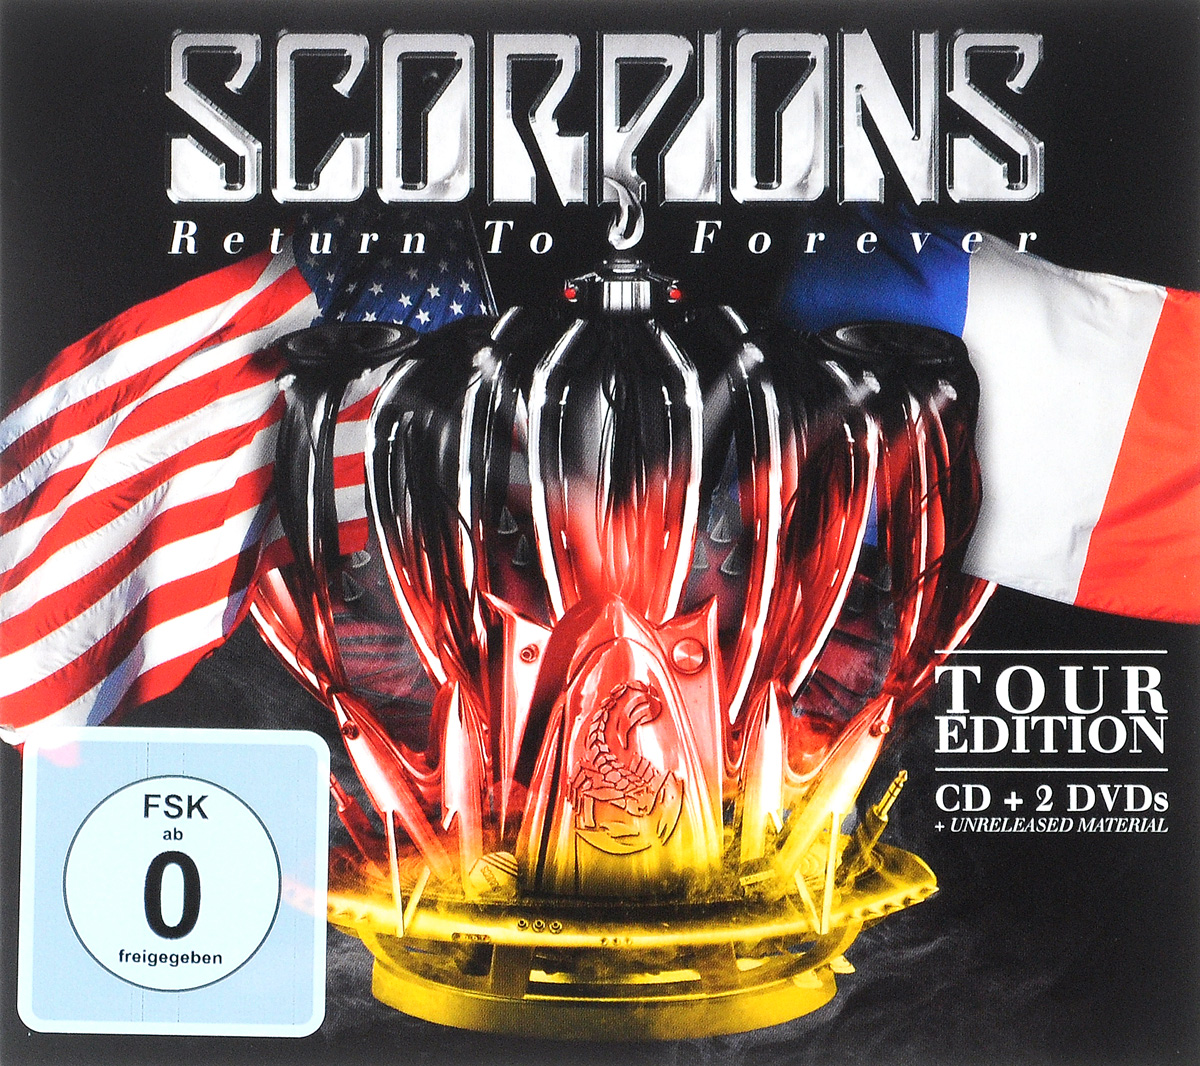 Scorpions Scorpions. Return To Forever. Tour Edition (CD + 2 DVD) cd scorpions taken by force 50th anniversary deluxe edition